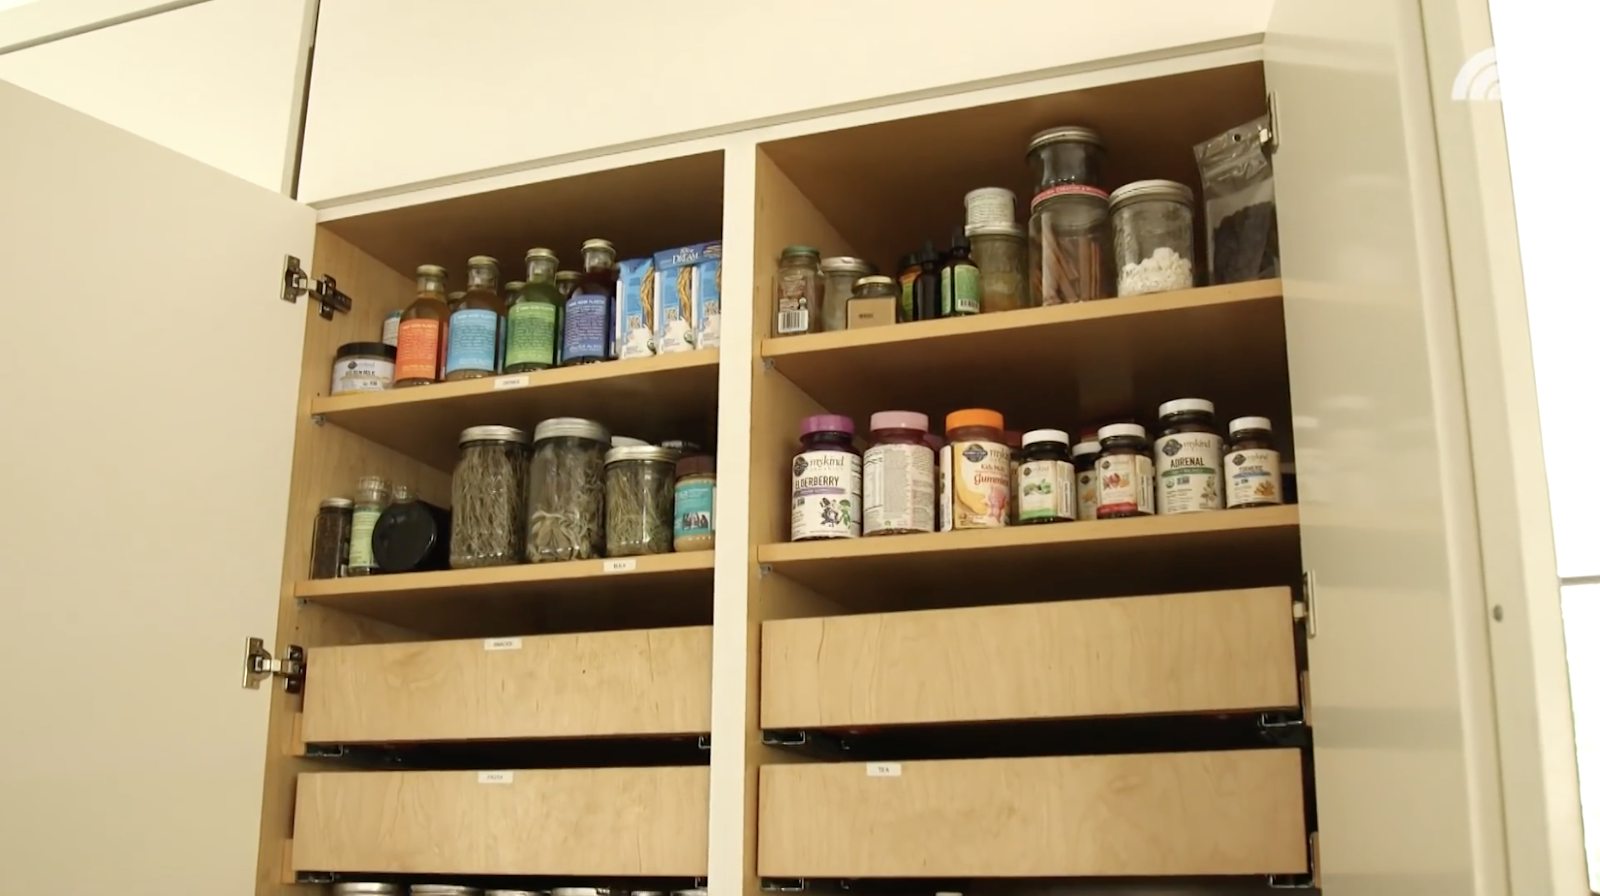 Pantry eco-friendly ala Alicia Silverstone - source: youtube.com/today